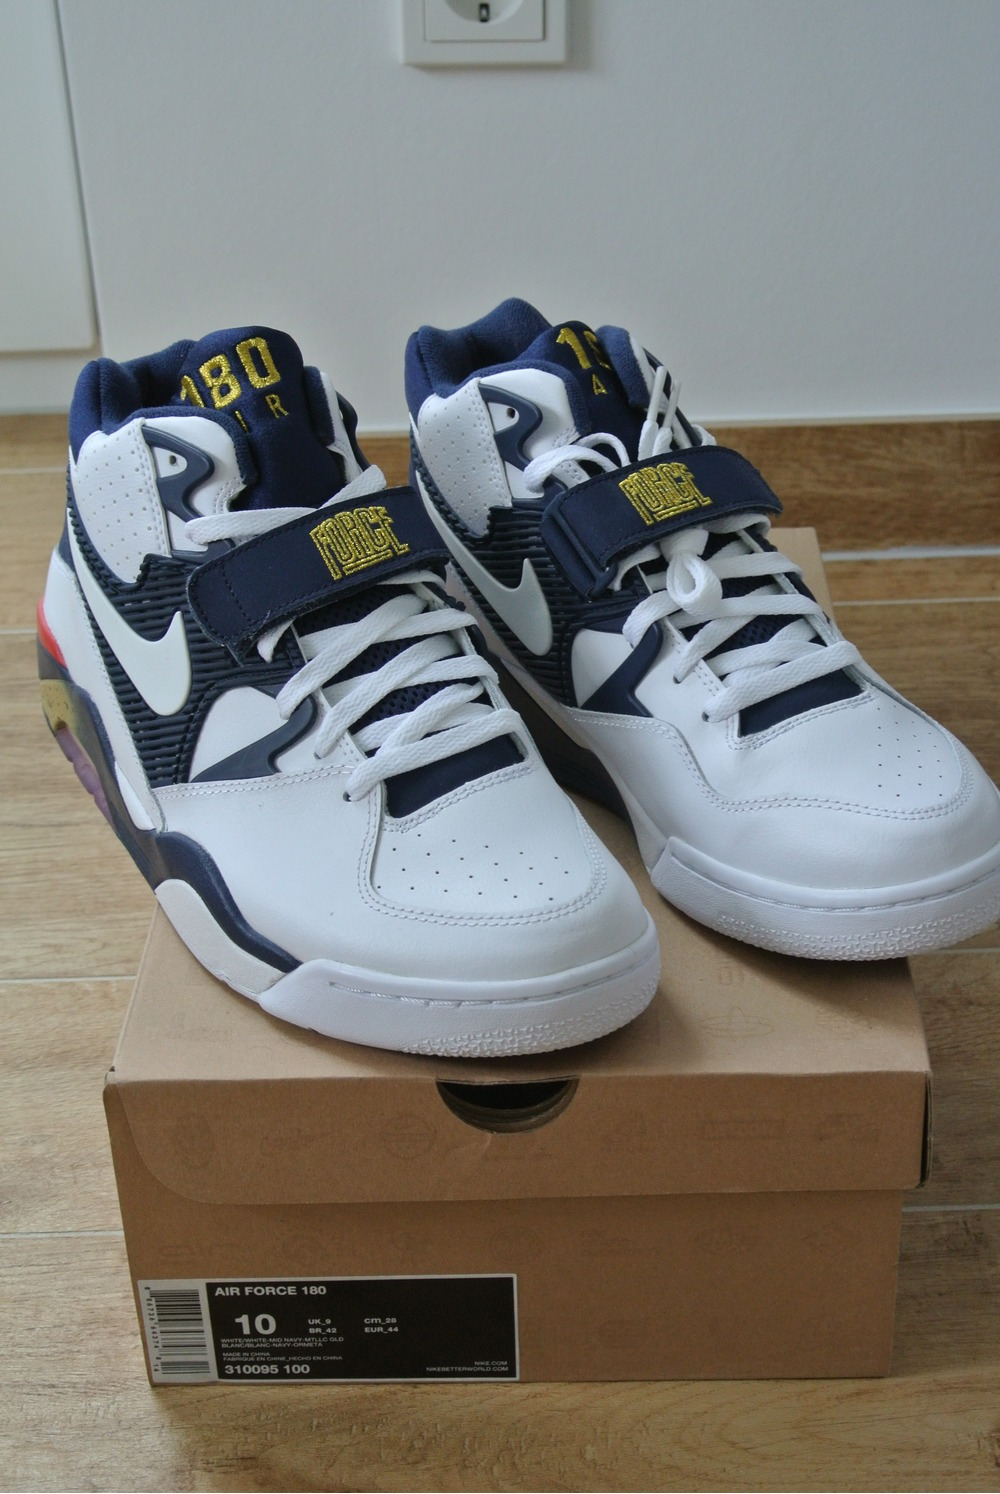 nike air force 180 olympic 2016 asics de cours de chaussure. Black Bedroom Furniture Sets. Home Design Ideas